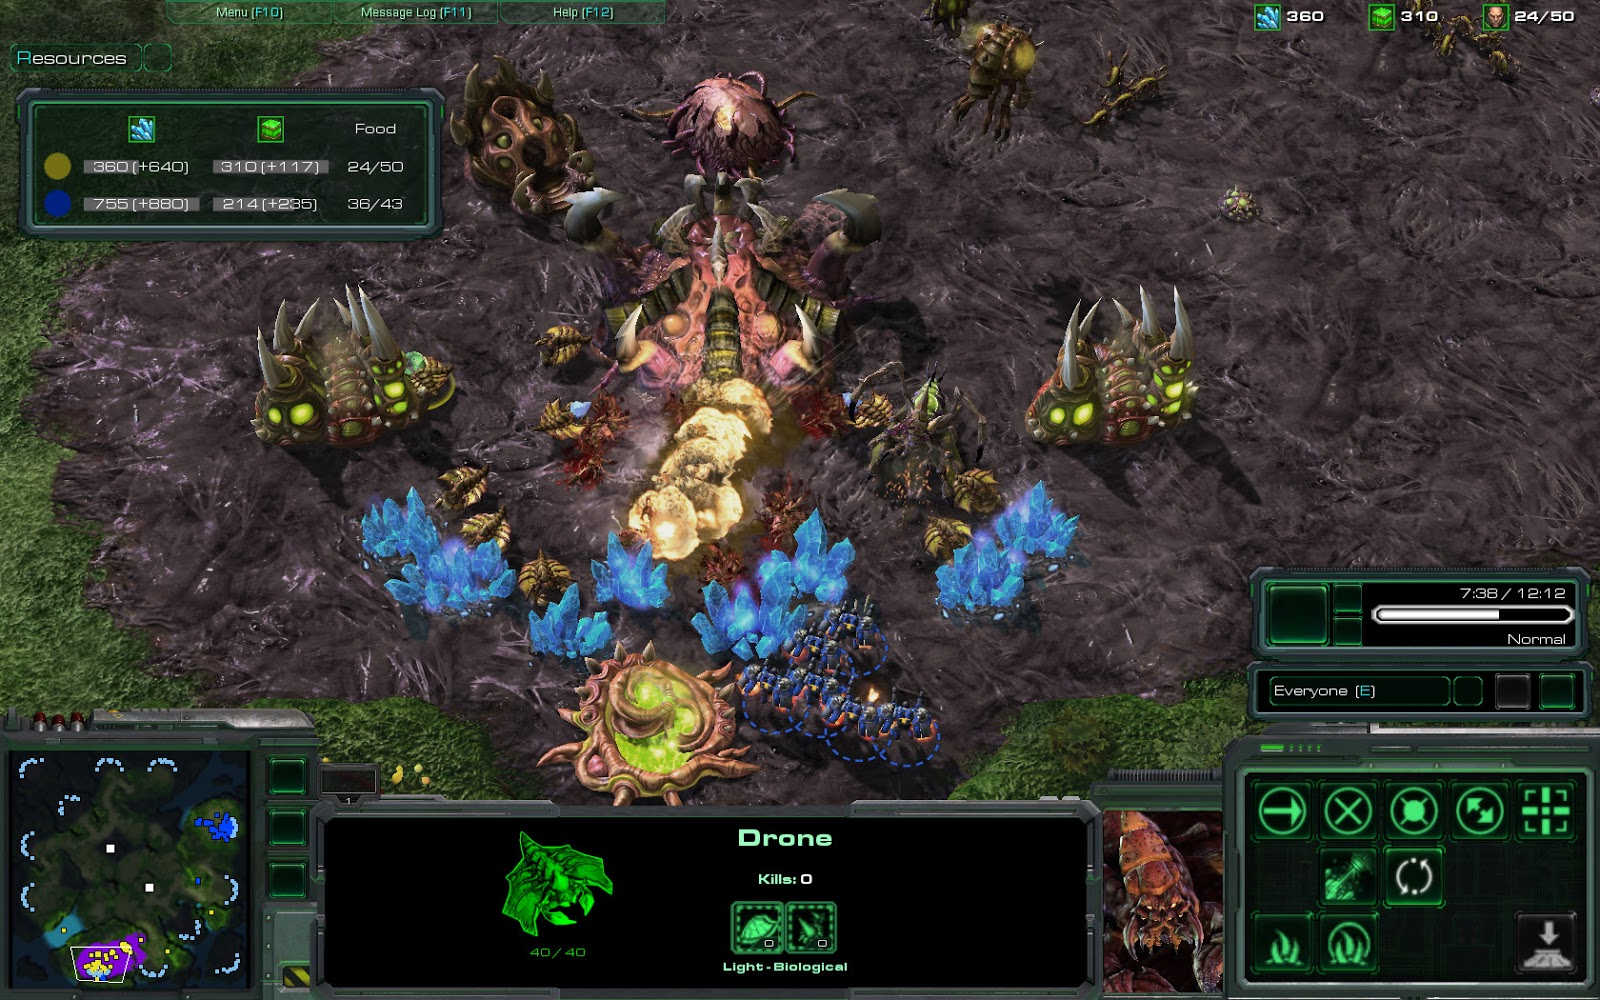 Download StarCraft 1 PC Game Full Version Offline Free